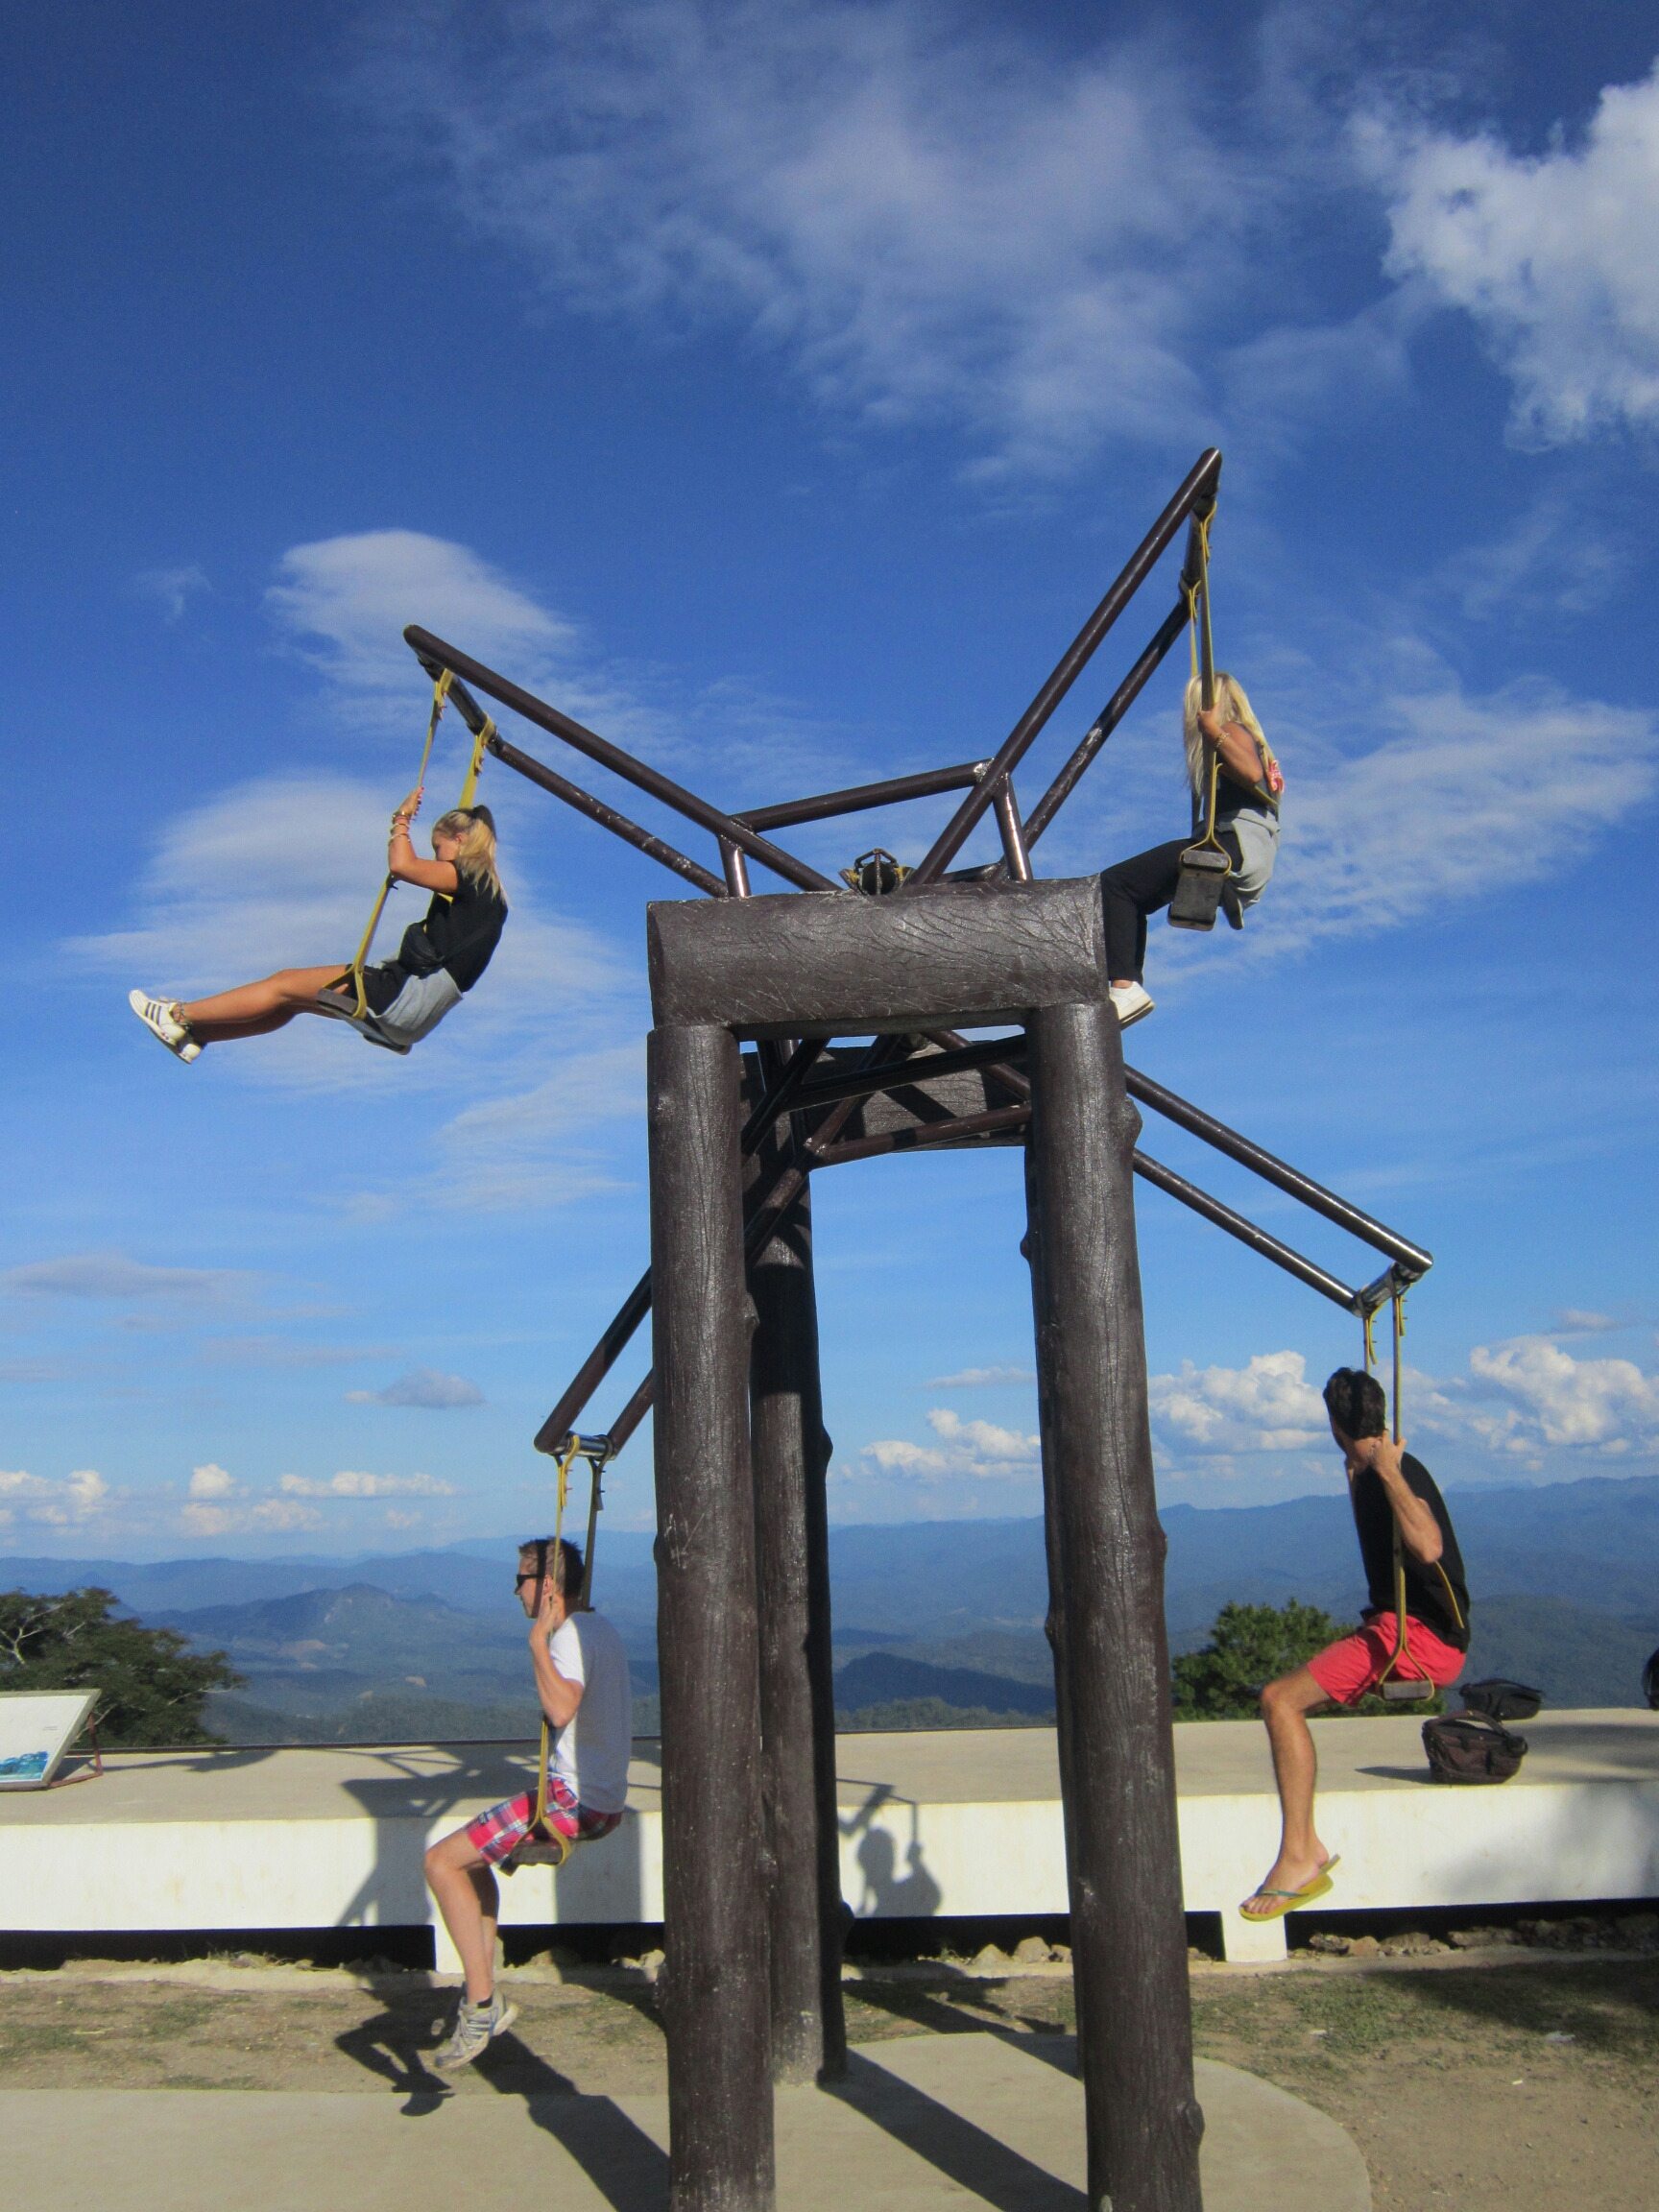 4 people on the giant swing at Pang Mapha Viewpoint, with blue sky and clouds behind them.